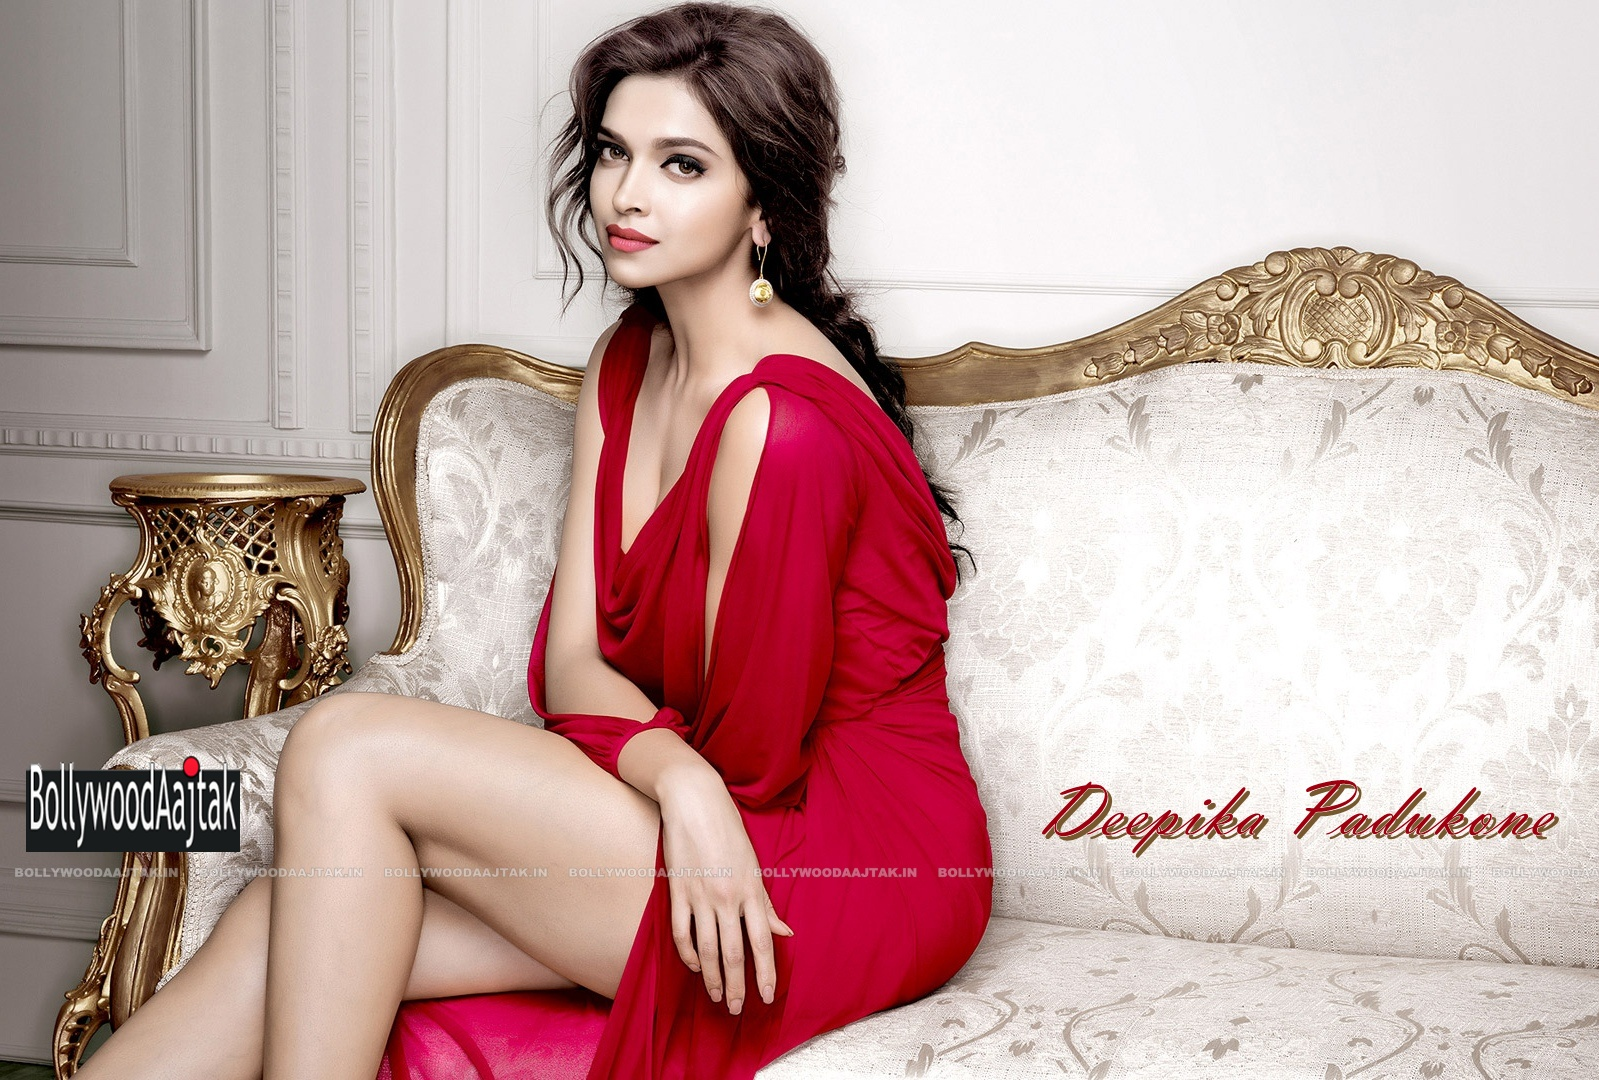 Deepika Padukone Wallapapers Collection: Deepika Padukone Wallpapers: Deepika Padukone Latest Hot